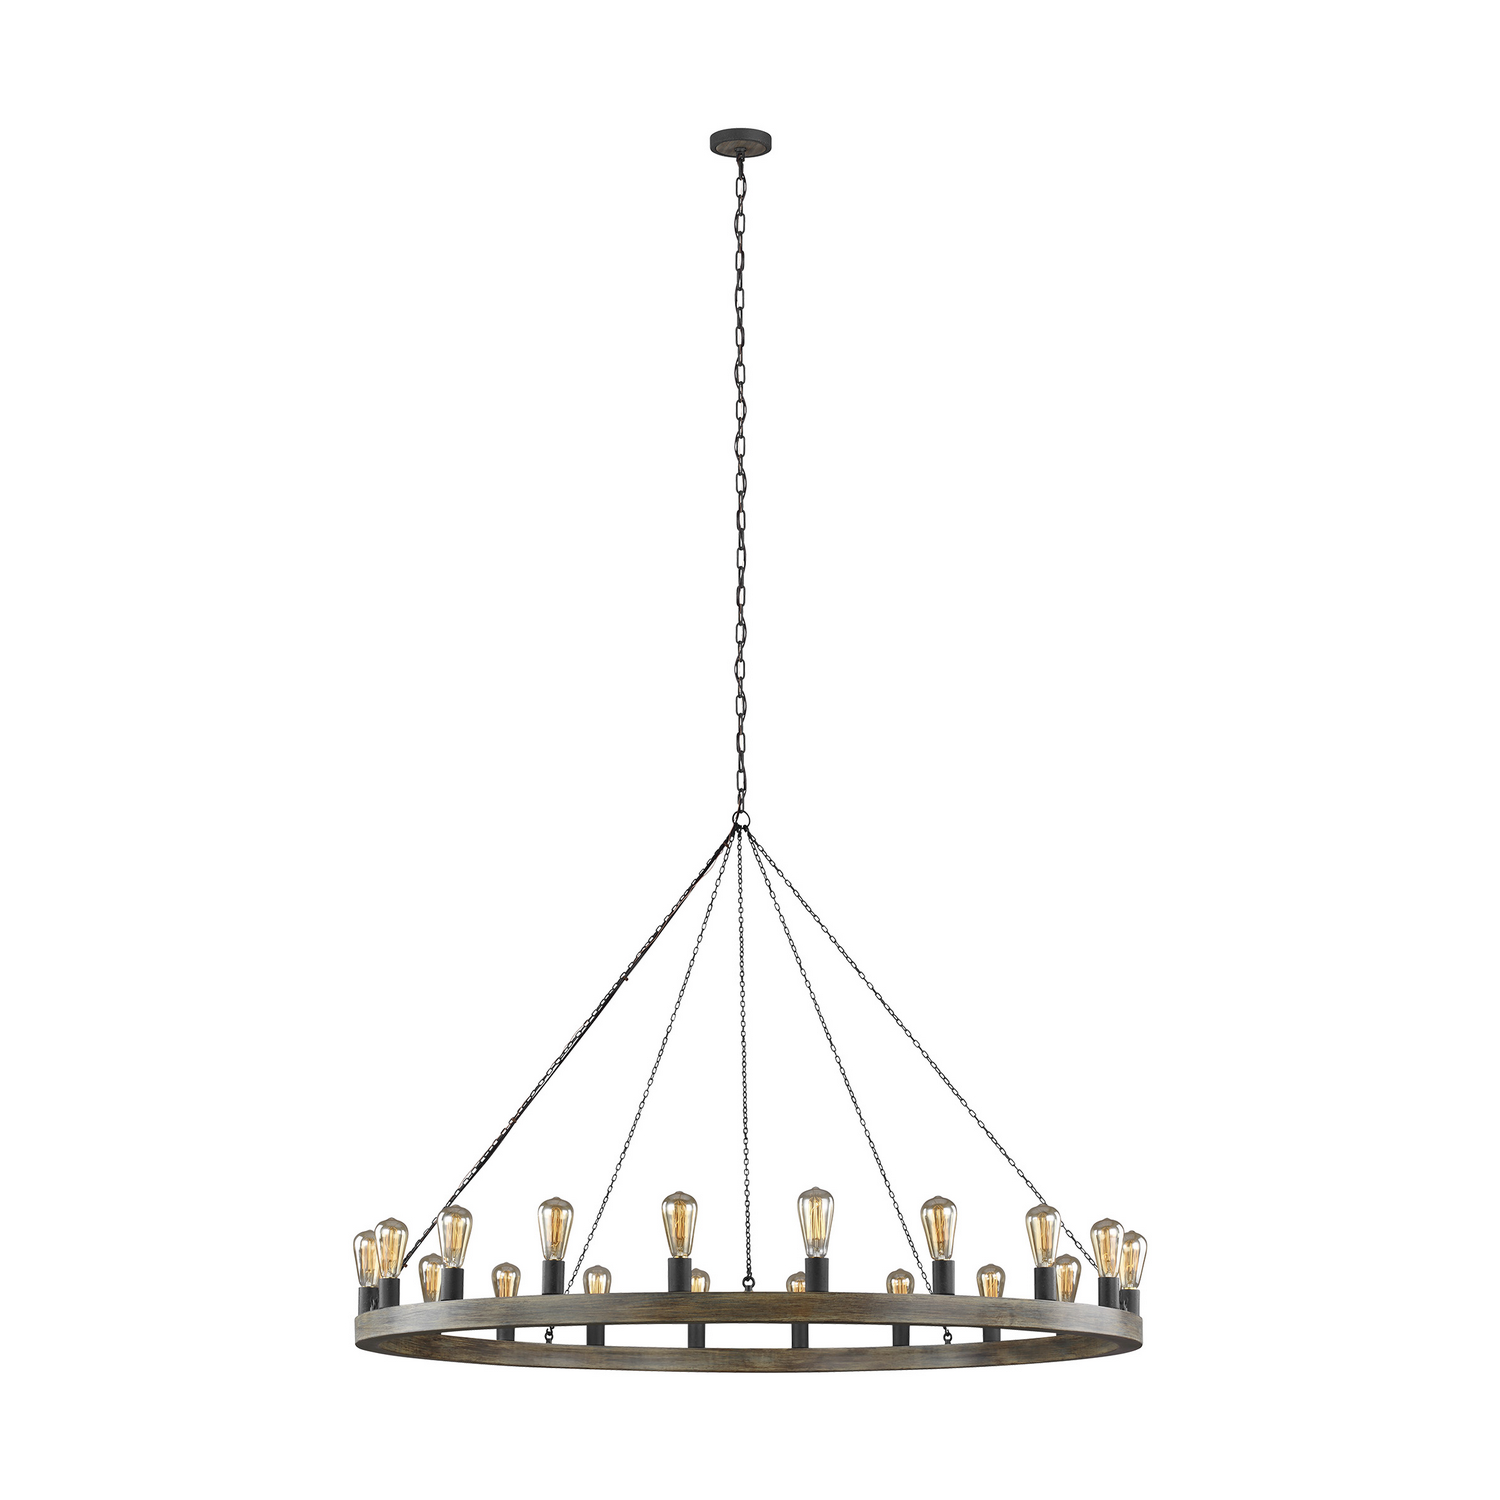 20 Light Chandelier from the Avenir collection by Feiss F393320WOWAF